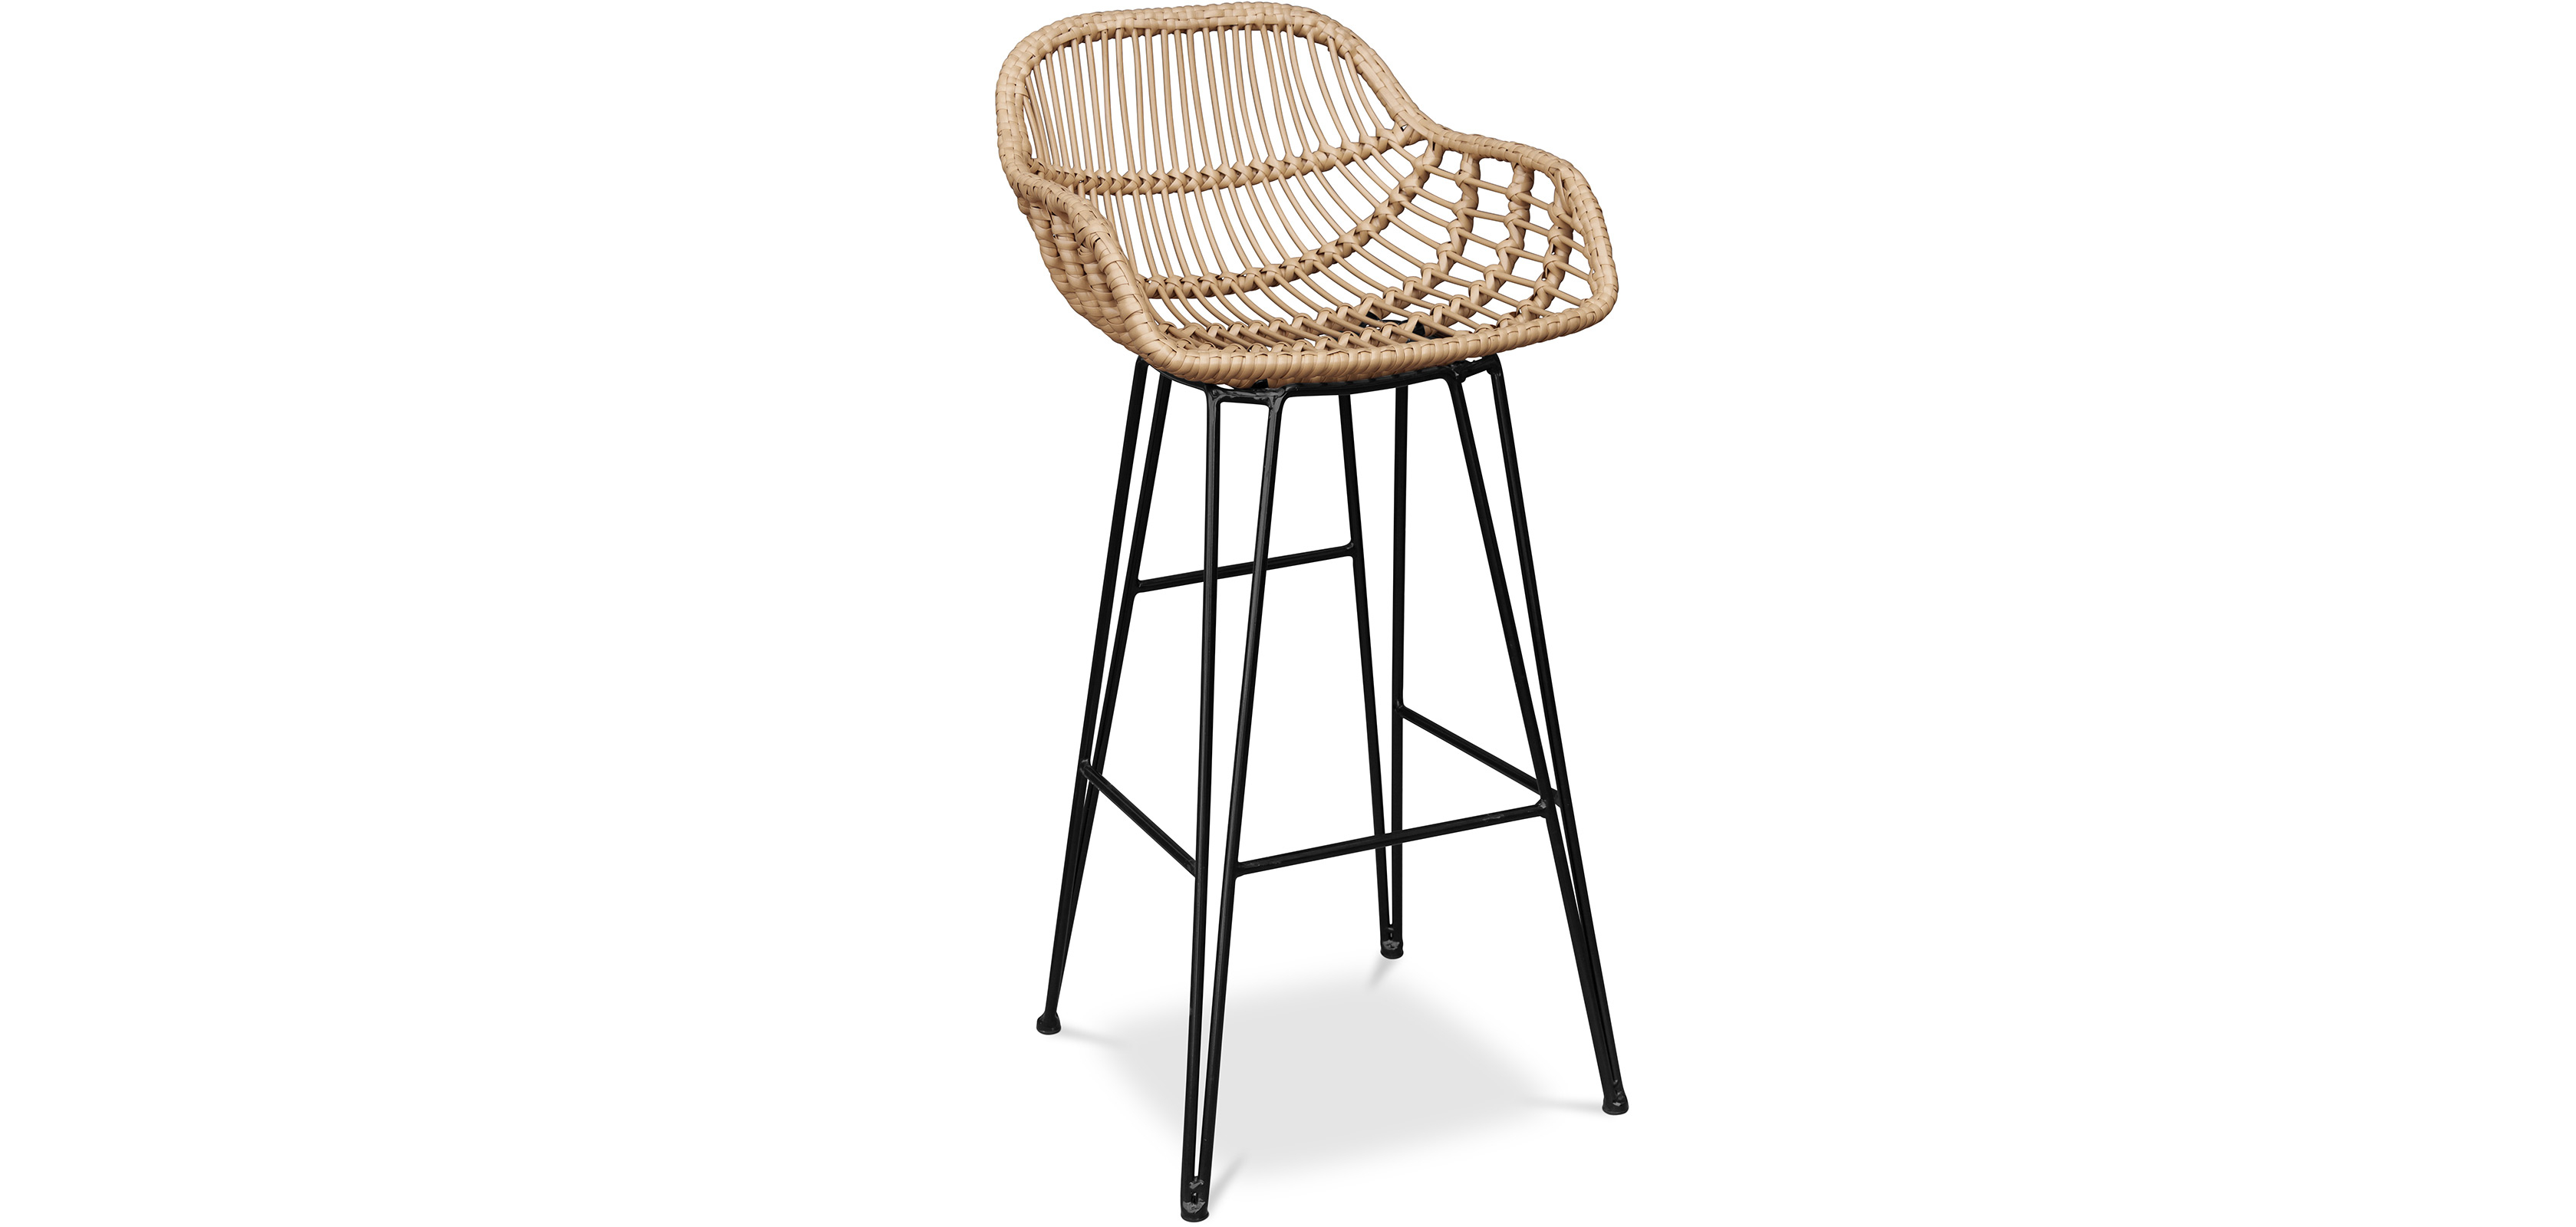 Buy Synthetic wicker bar stool - Magony Natural wood 59256 - in the UK